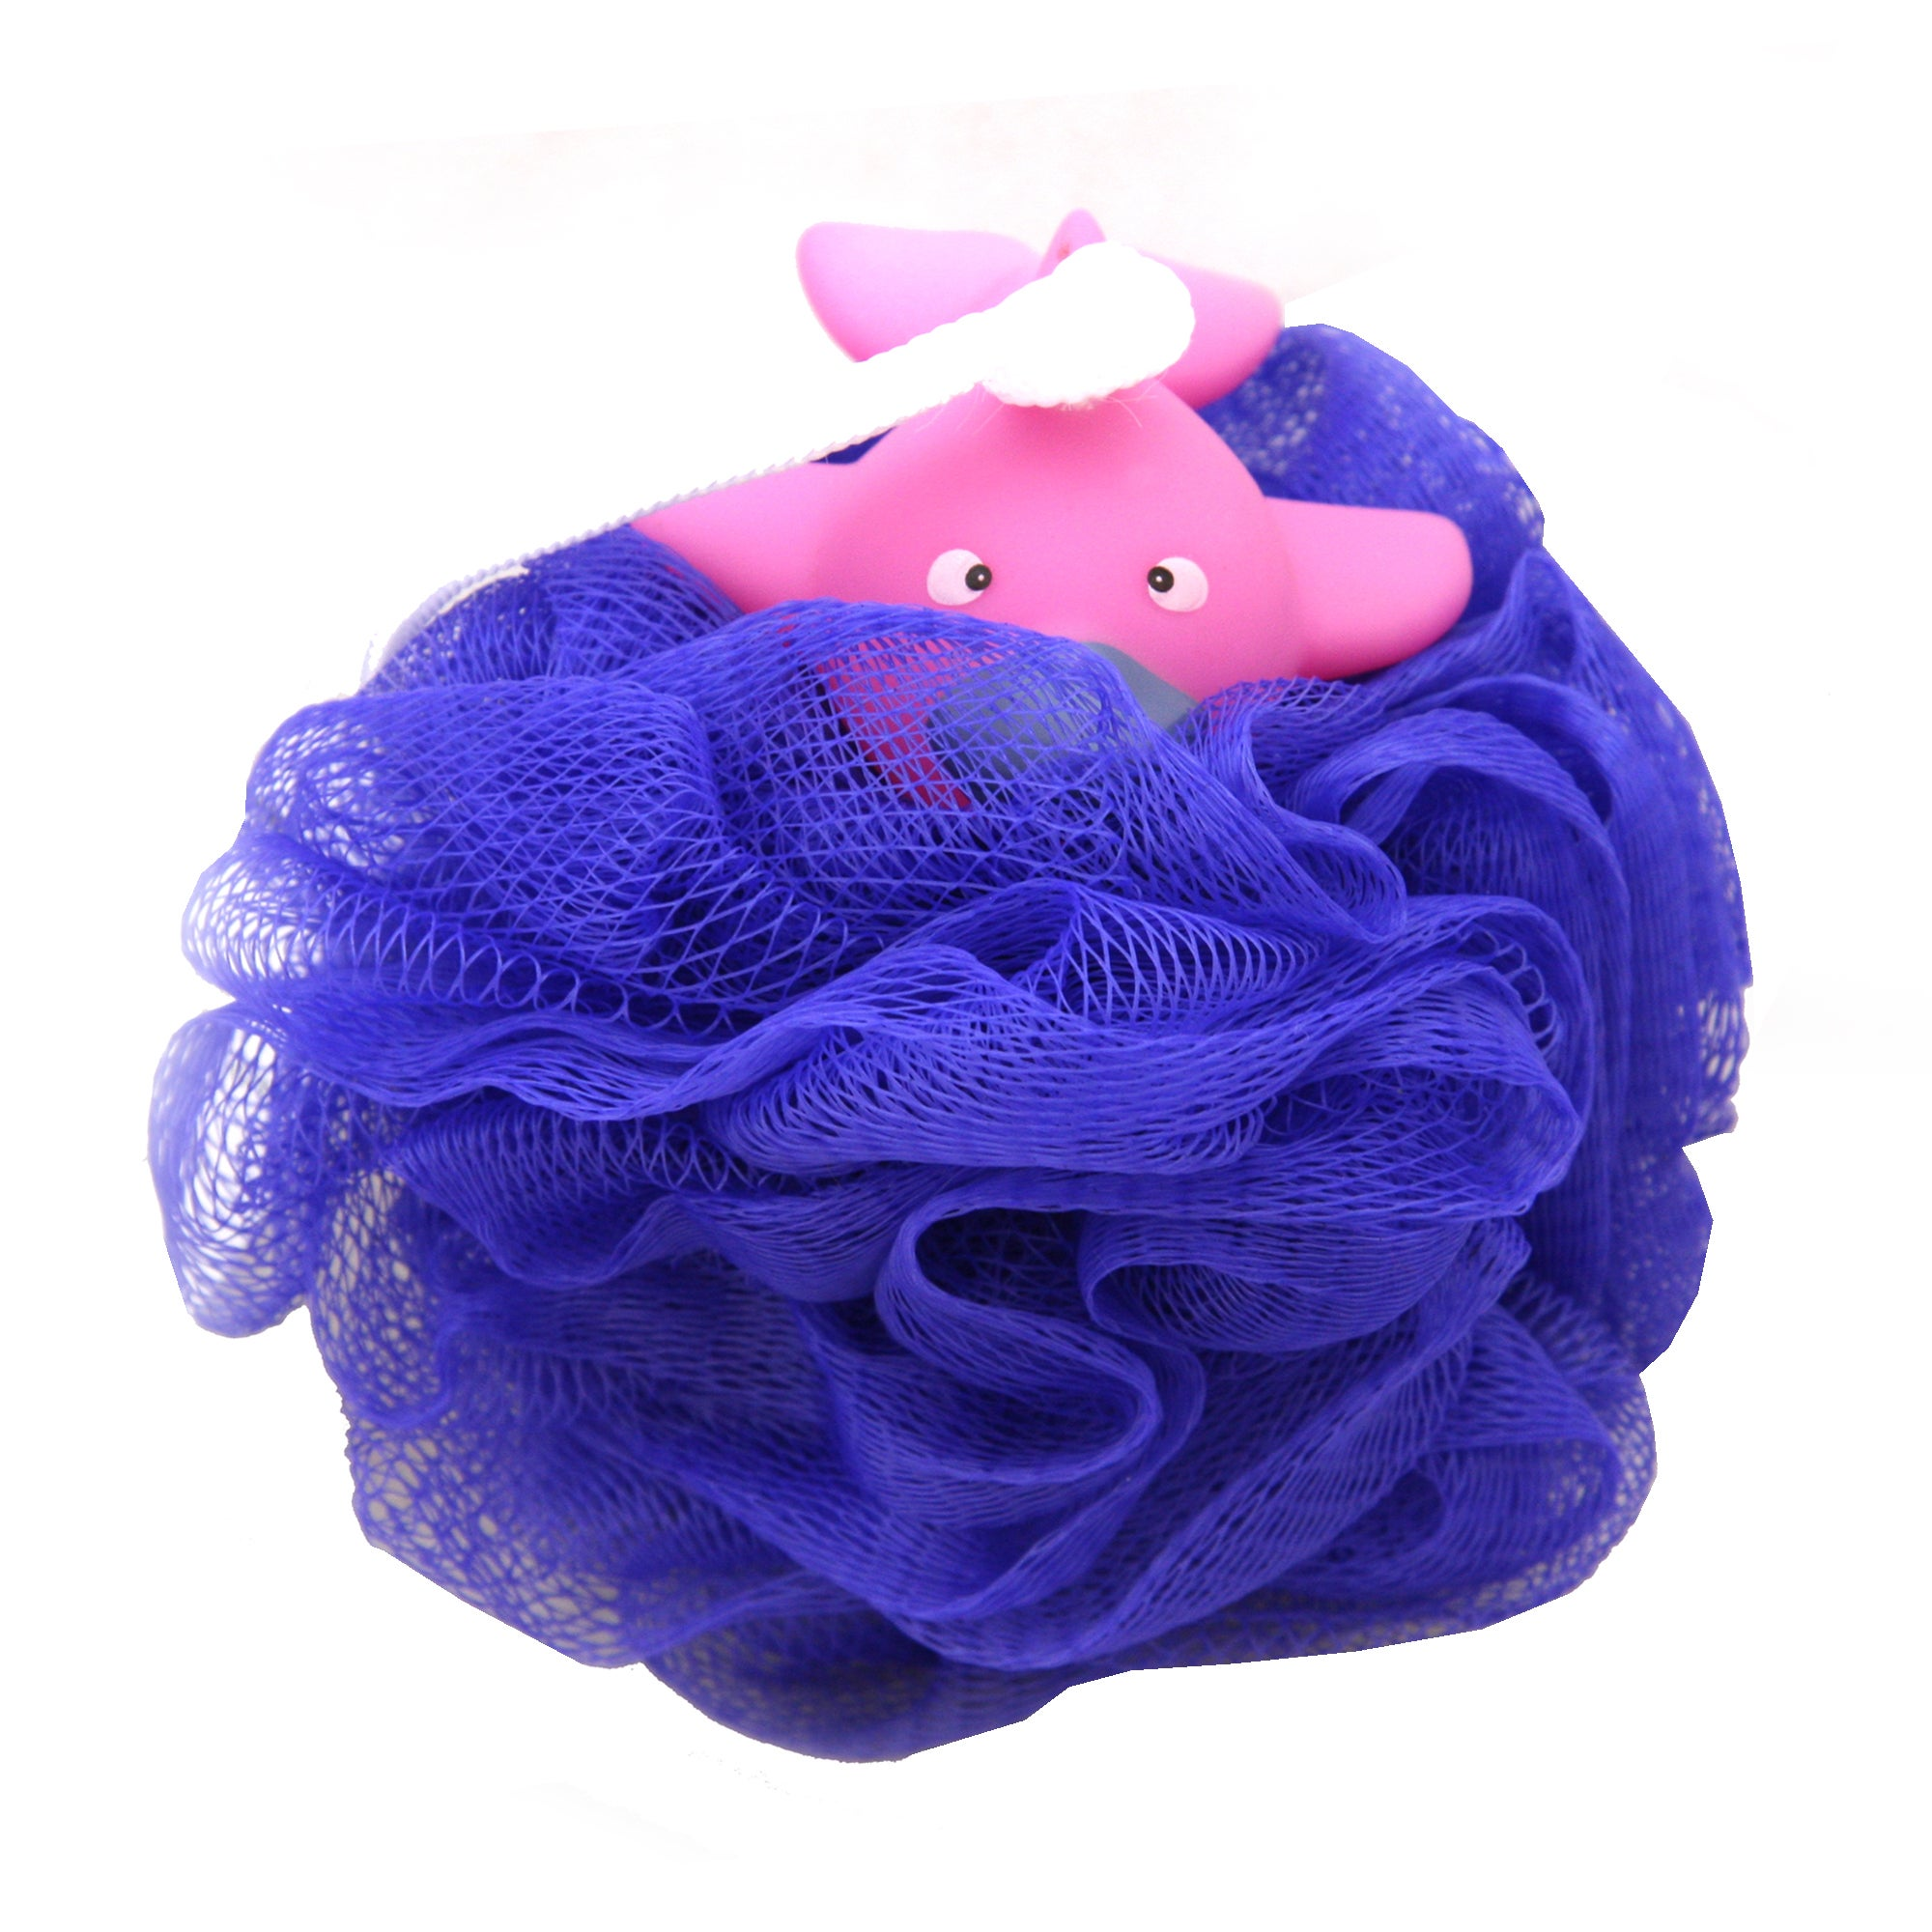 Platy Bath Toy Scrunchie